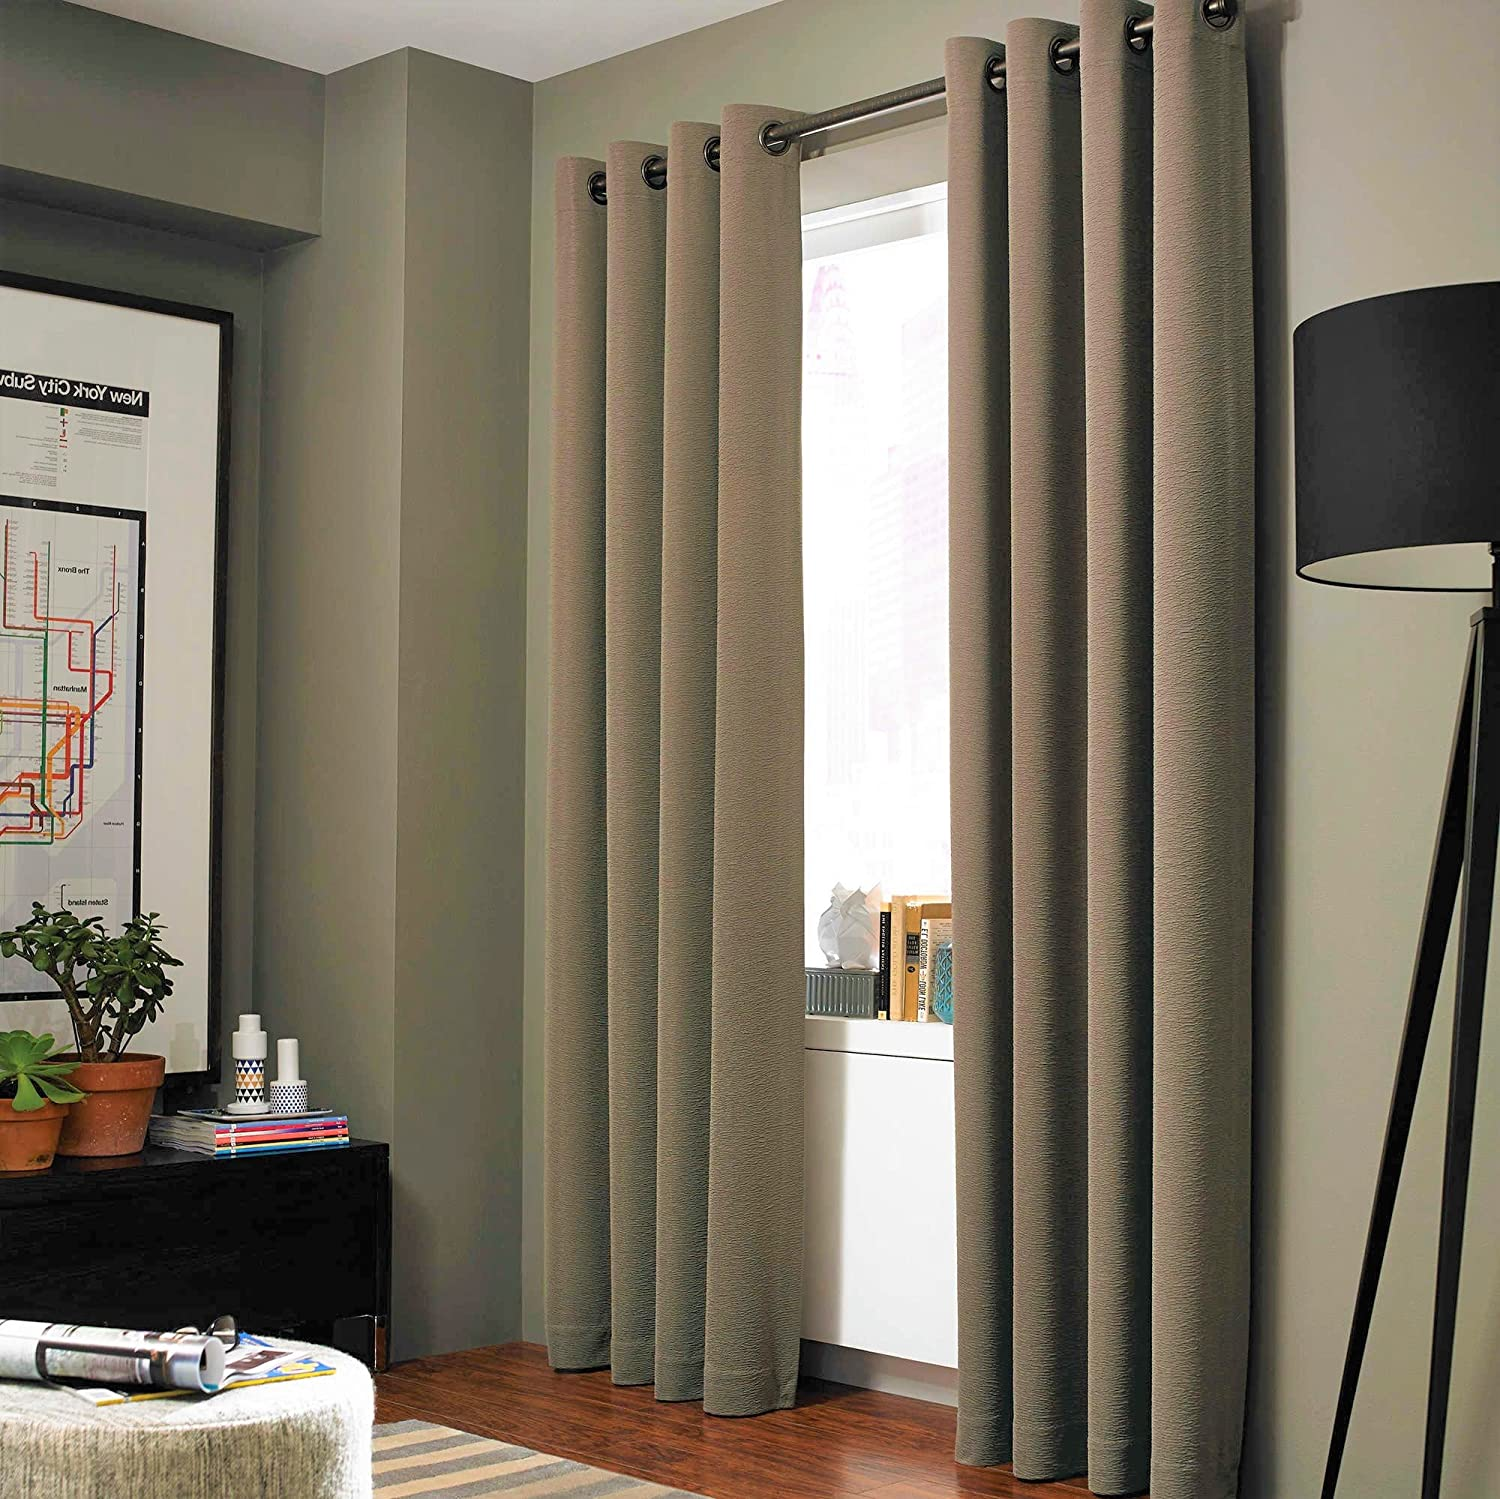 "GorgeousHomeLinen (NOA) 1 Solid Panel 100% Room Darkening Insulated Thermal Lined Blackout Window Grommets Curtain (84"" Length, Taupe TAN)"